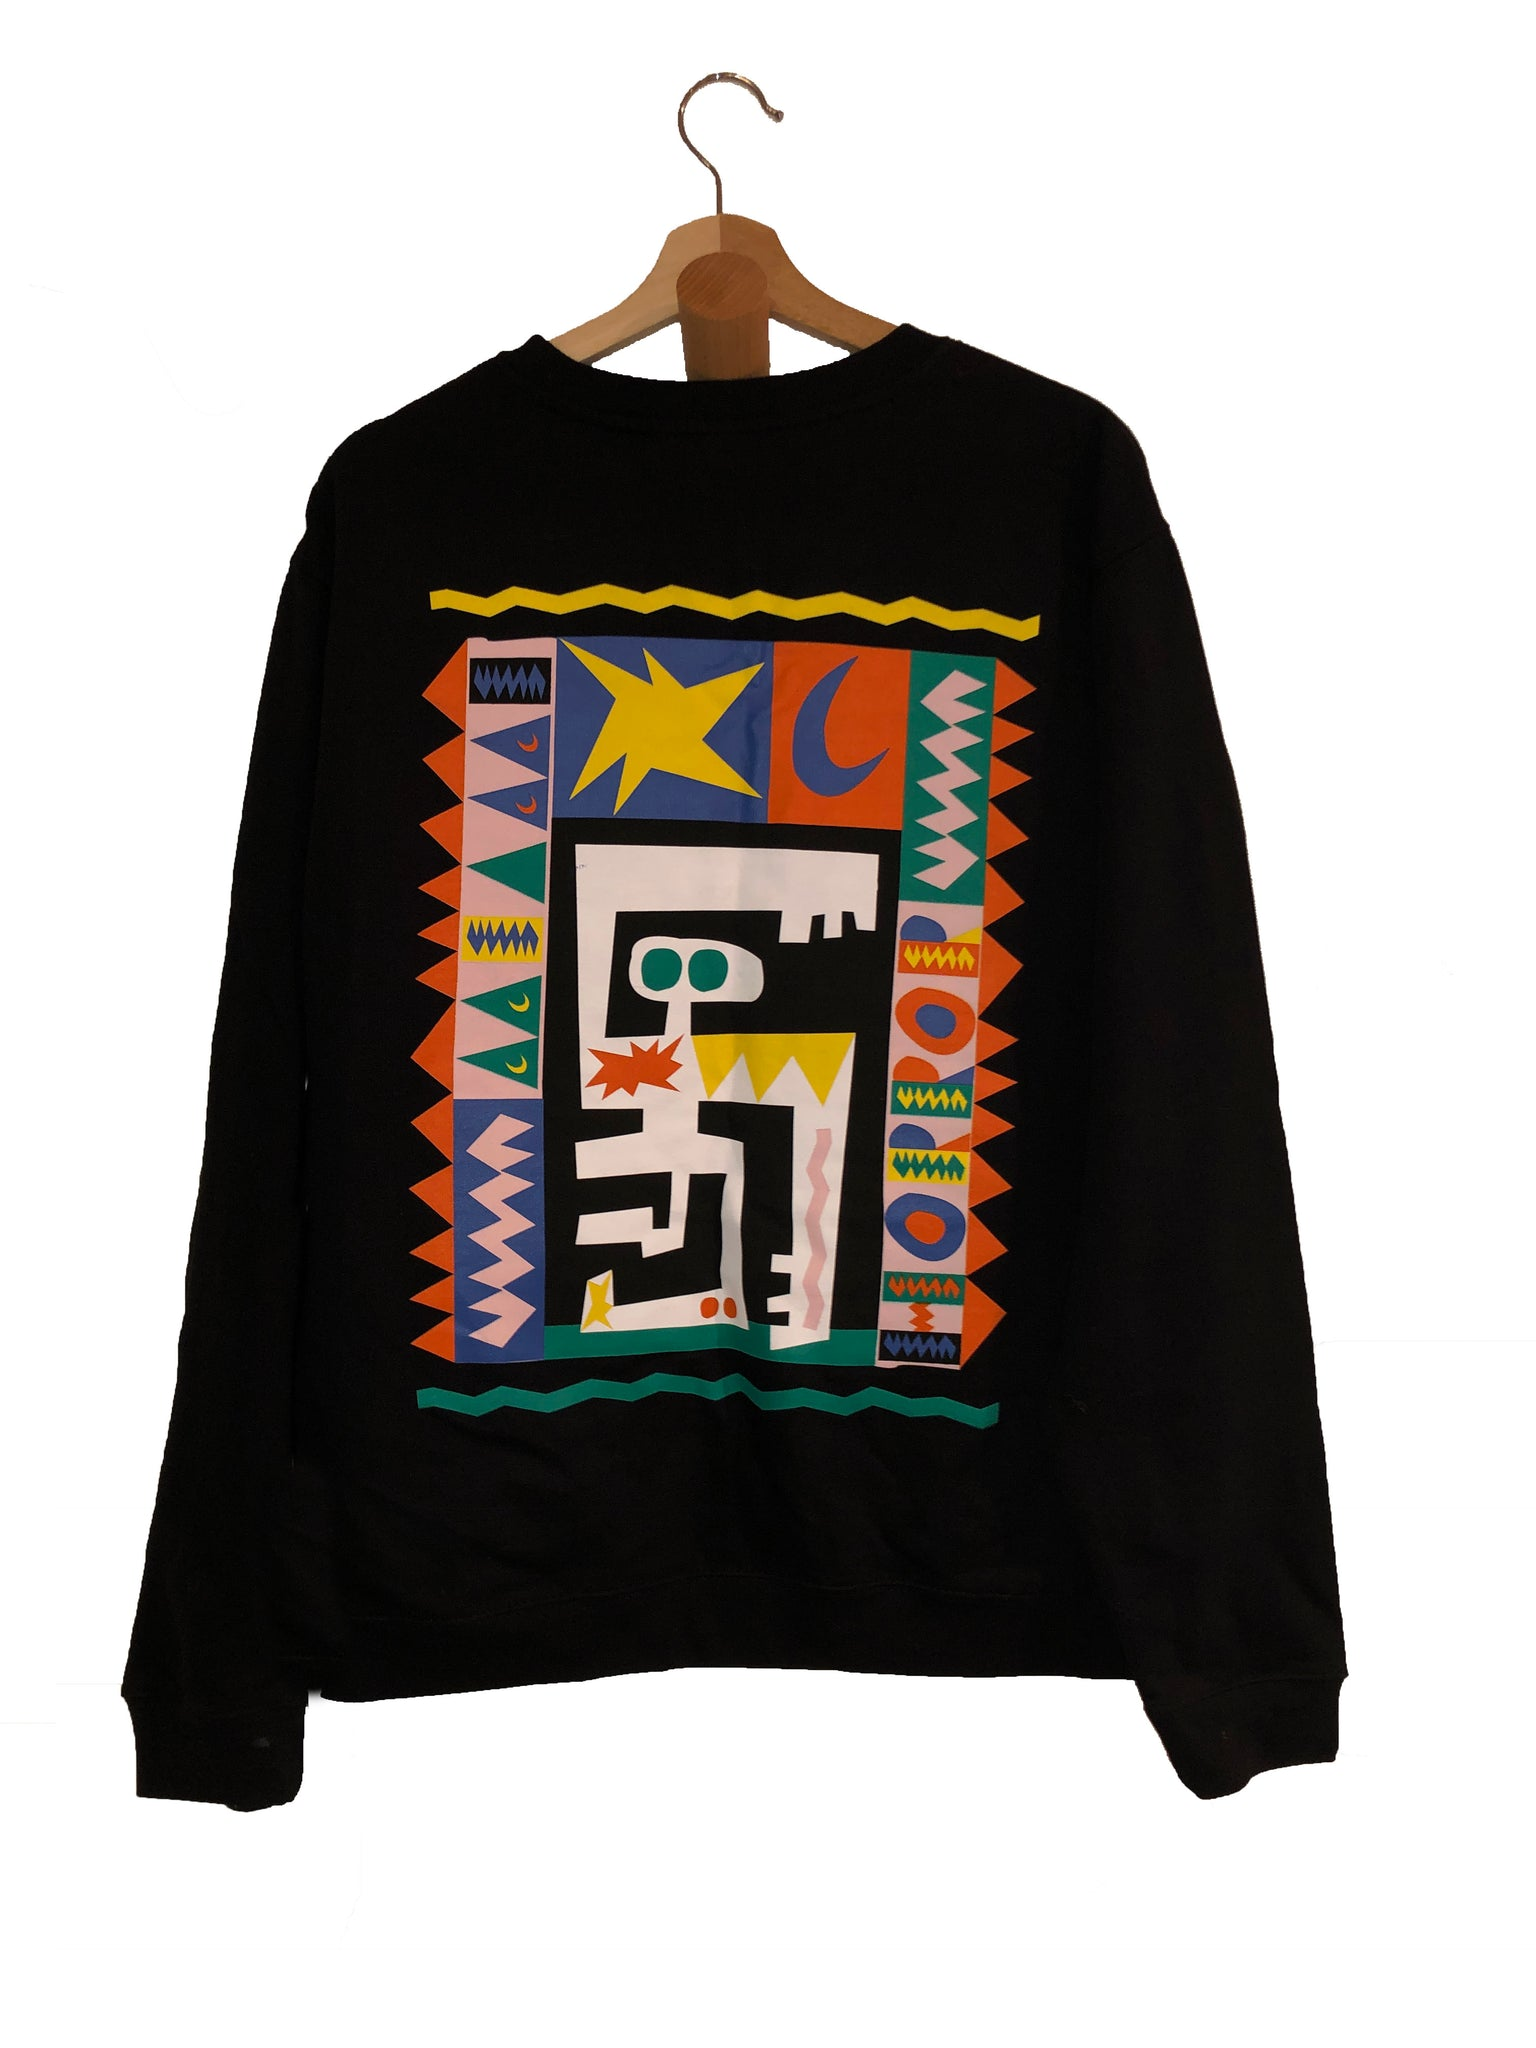 Azimba - Black Crewneck Sweater